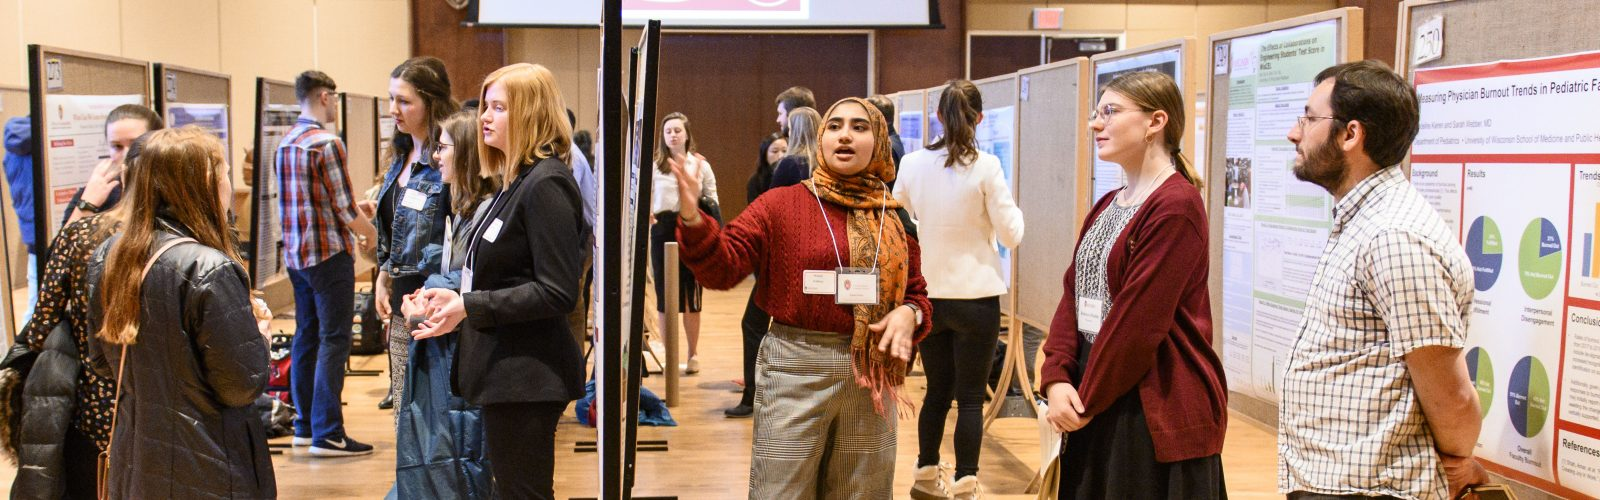 Hibah Hafeez (right) talks about her research project and poster display during the Undergraduate Symposium in Varsity Hall inside of Union South at the University of Wisconsin-Madison